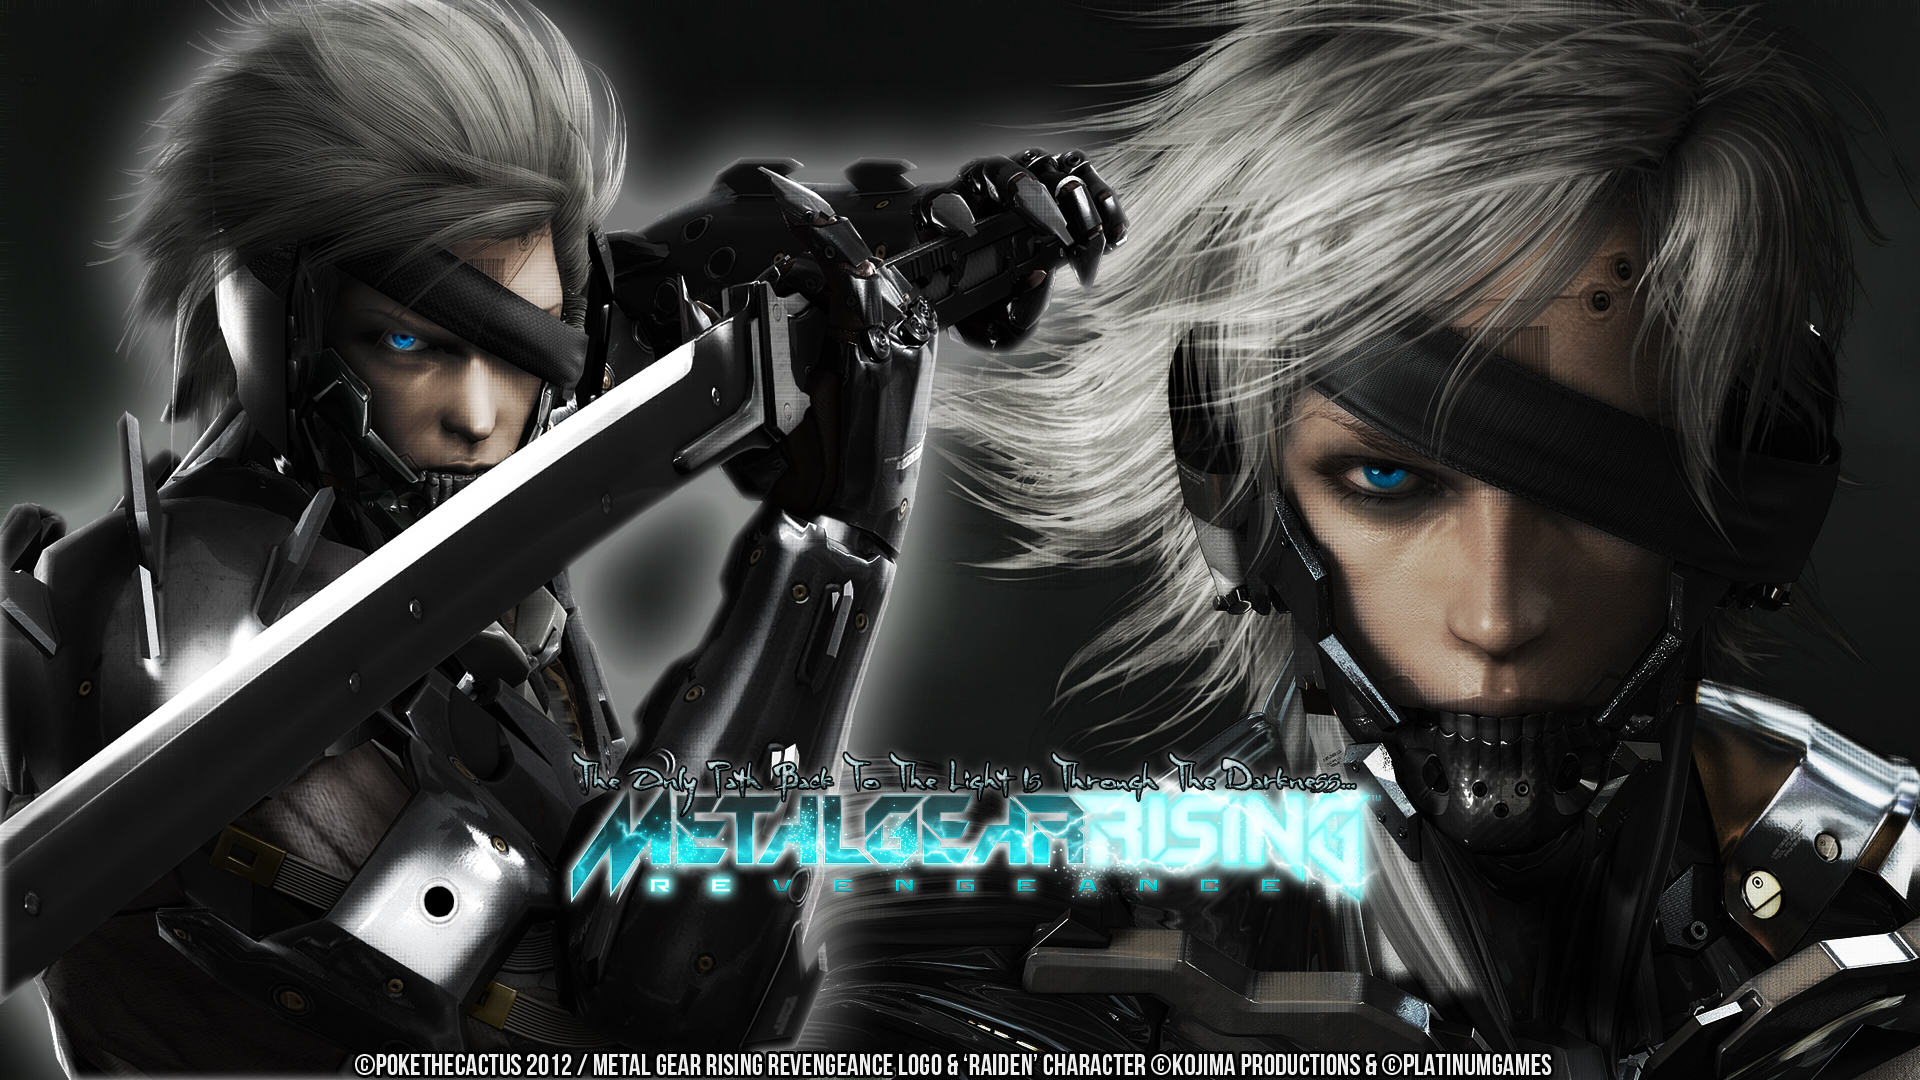 Metalgearsolidrisingrevengeance explore oniika 293 46 raiden metal gear rising wallpaper by pokethecactus voltagebd Image collections